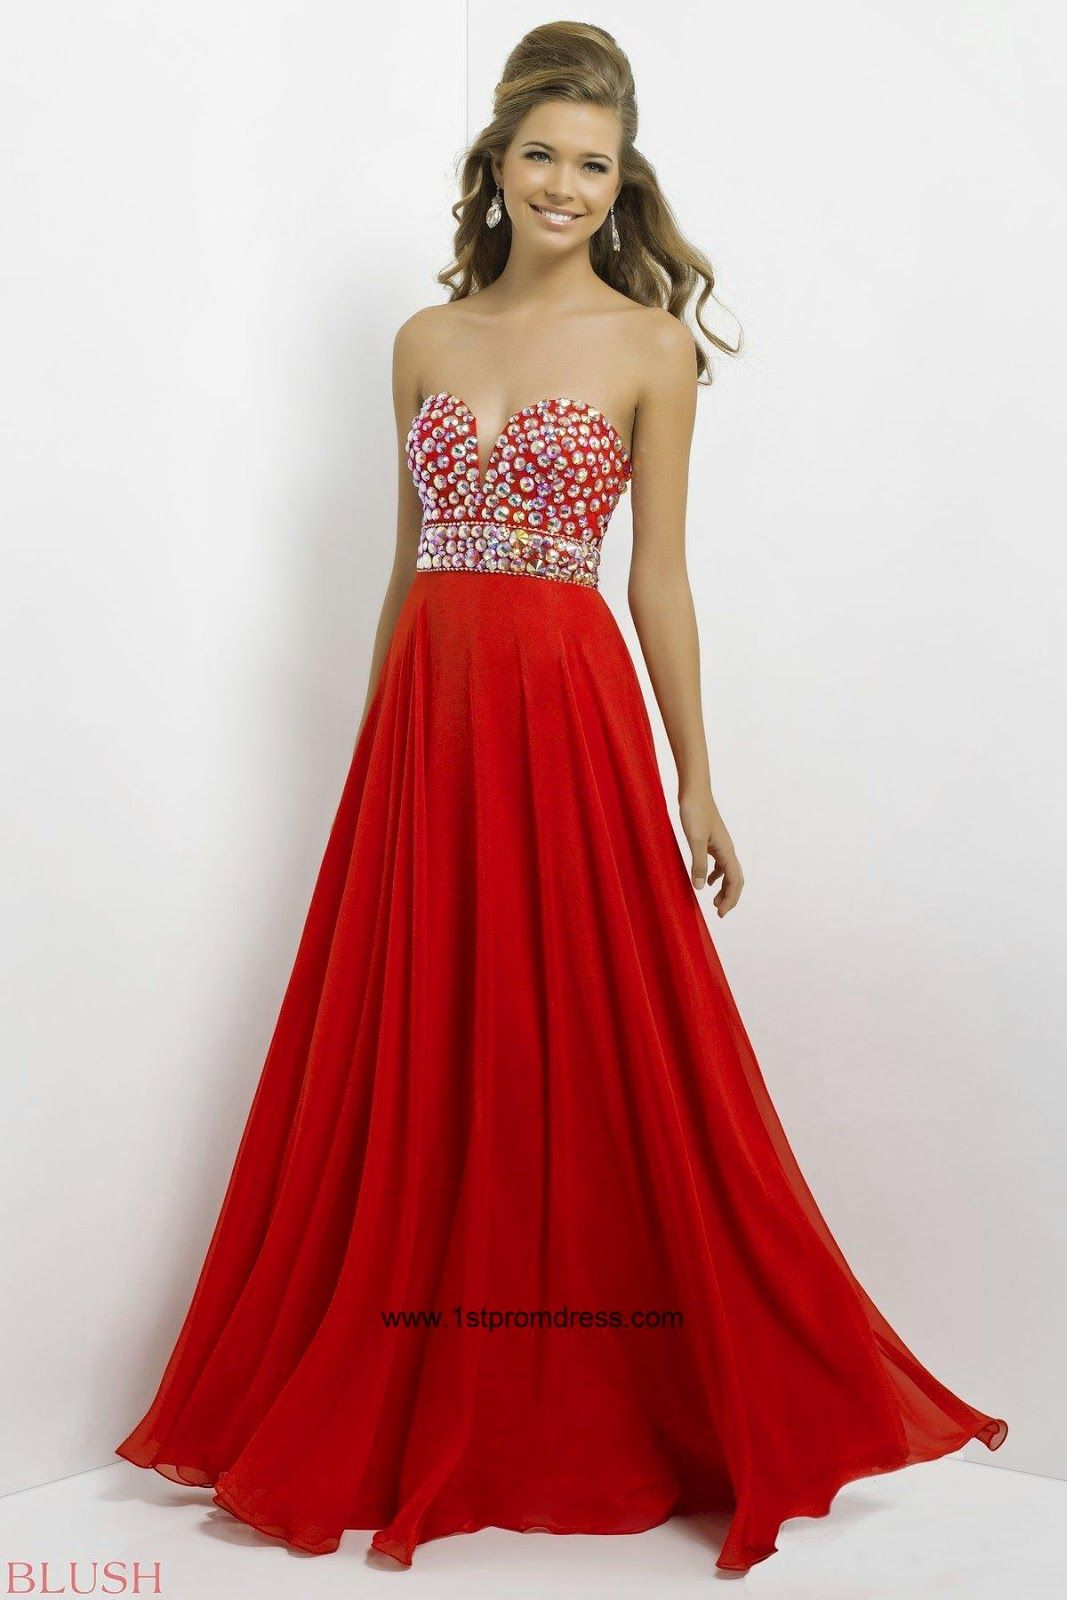 Images of Red Prom Dress Under 100 - Reikian